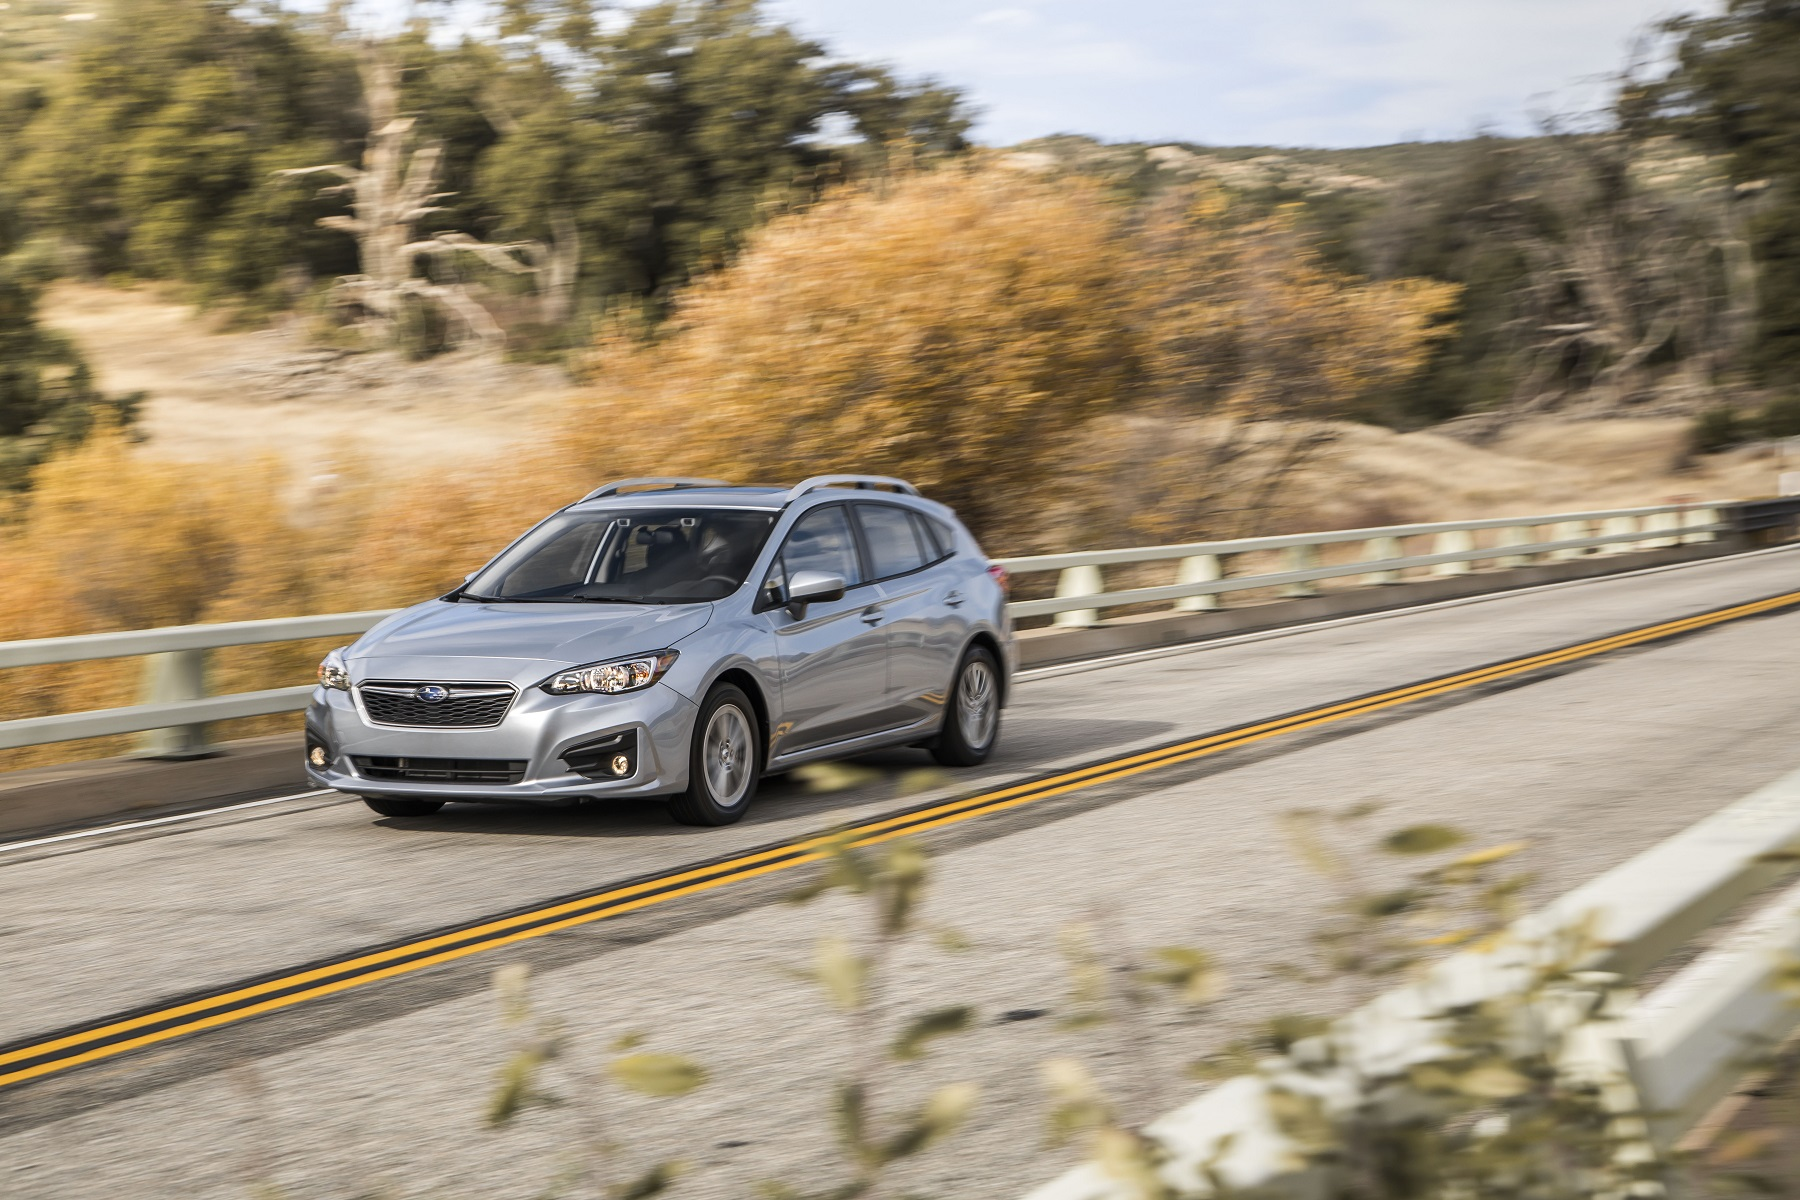 Manufacturer photo: The all-new 2017 Impreza debuts the Subaru Global Platform architecture that's designed to deliver significantly higher levels of driving pleasure, agility, crash protection and ride comfort